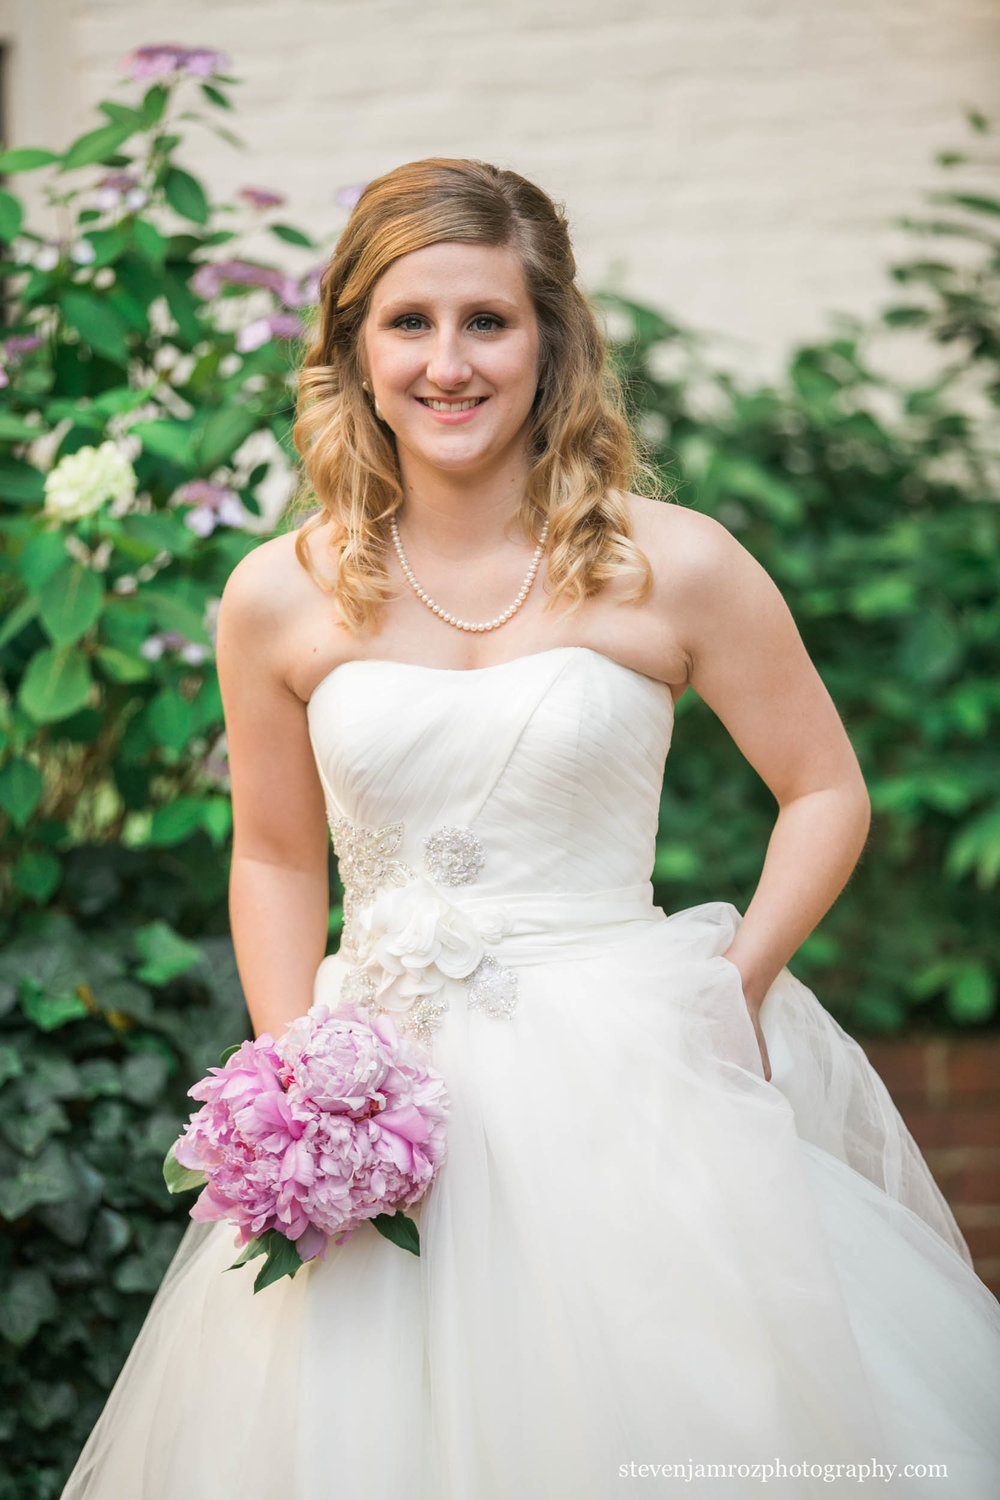 bridal-portrait-dinwiddie-chapel-peace-university-0537.jpg